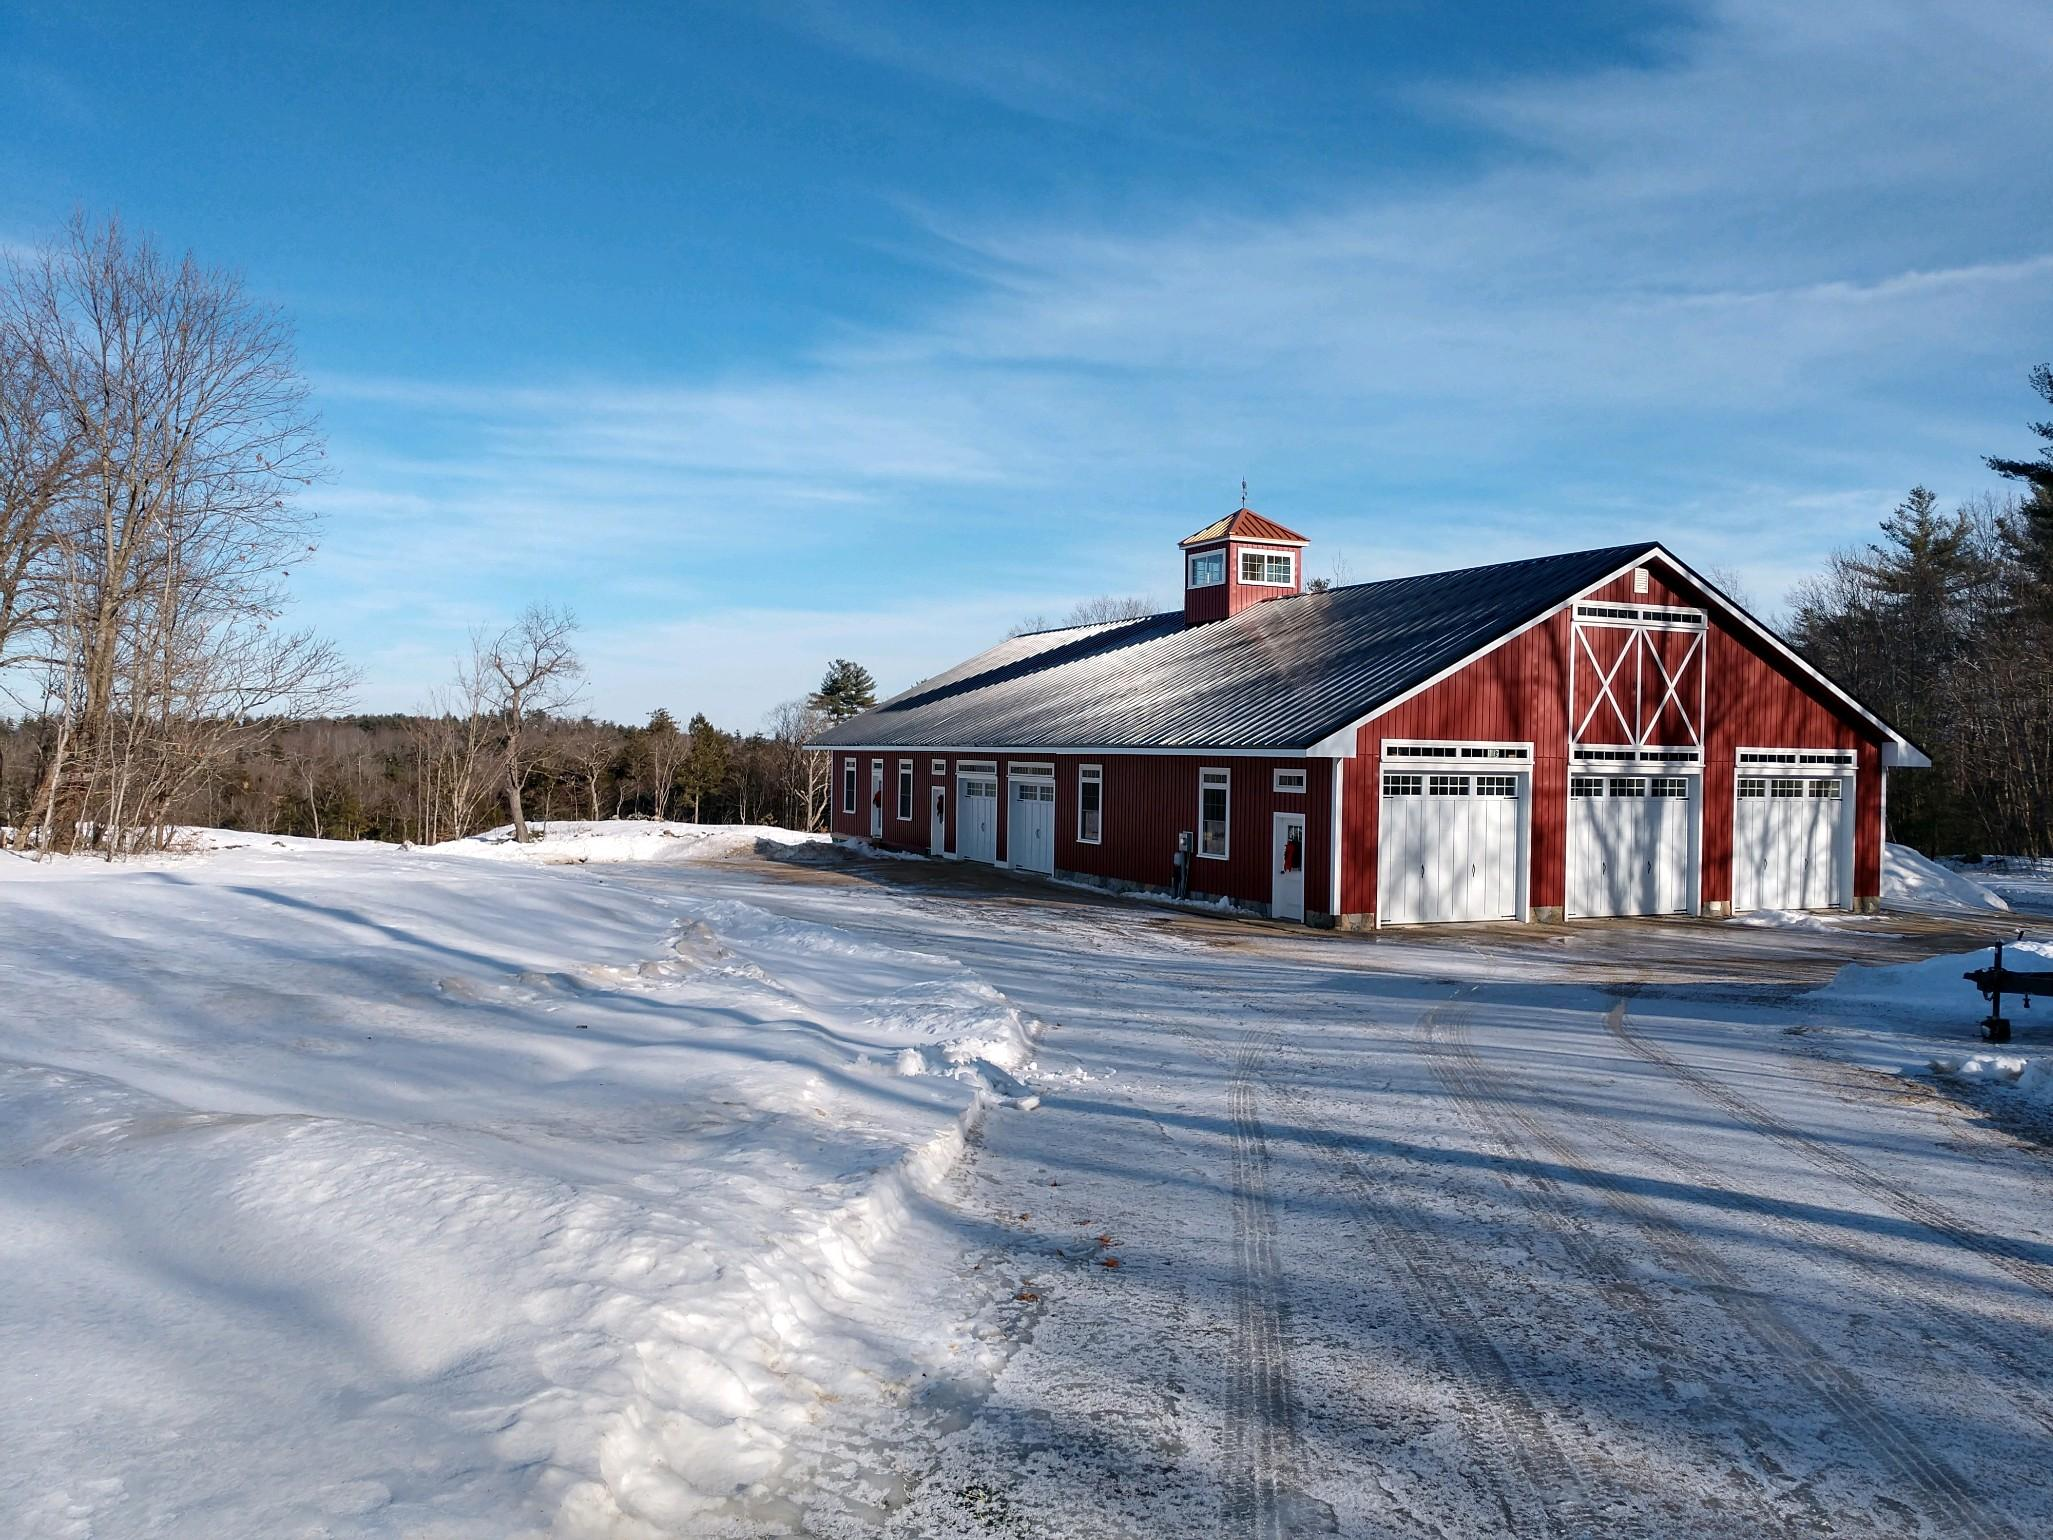 The barn in winter